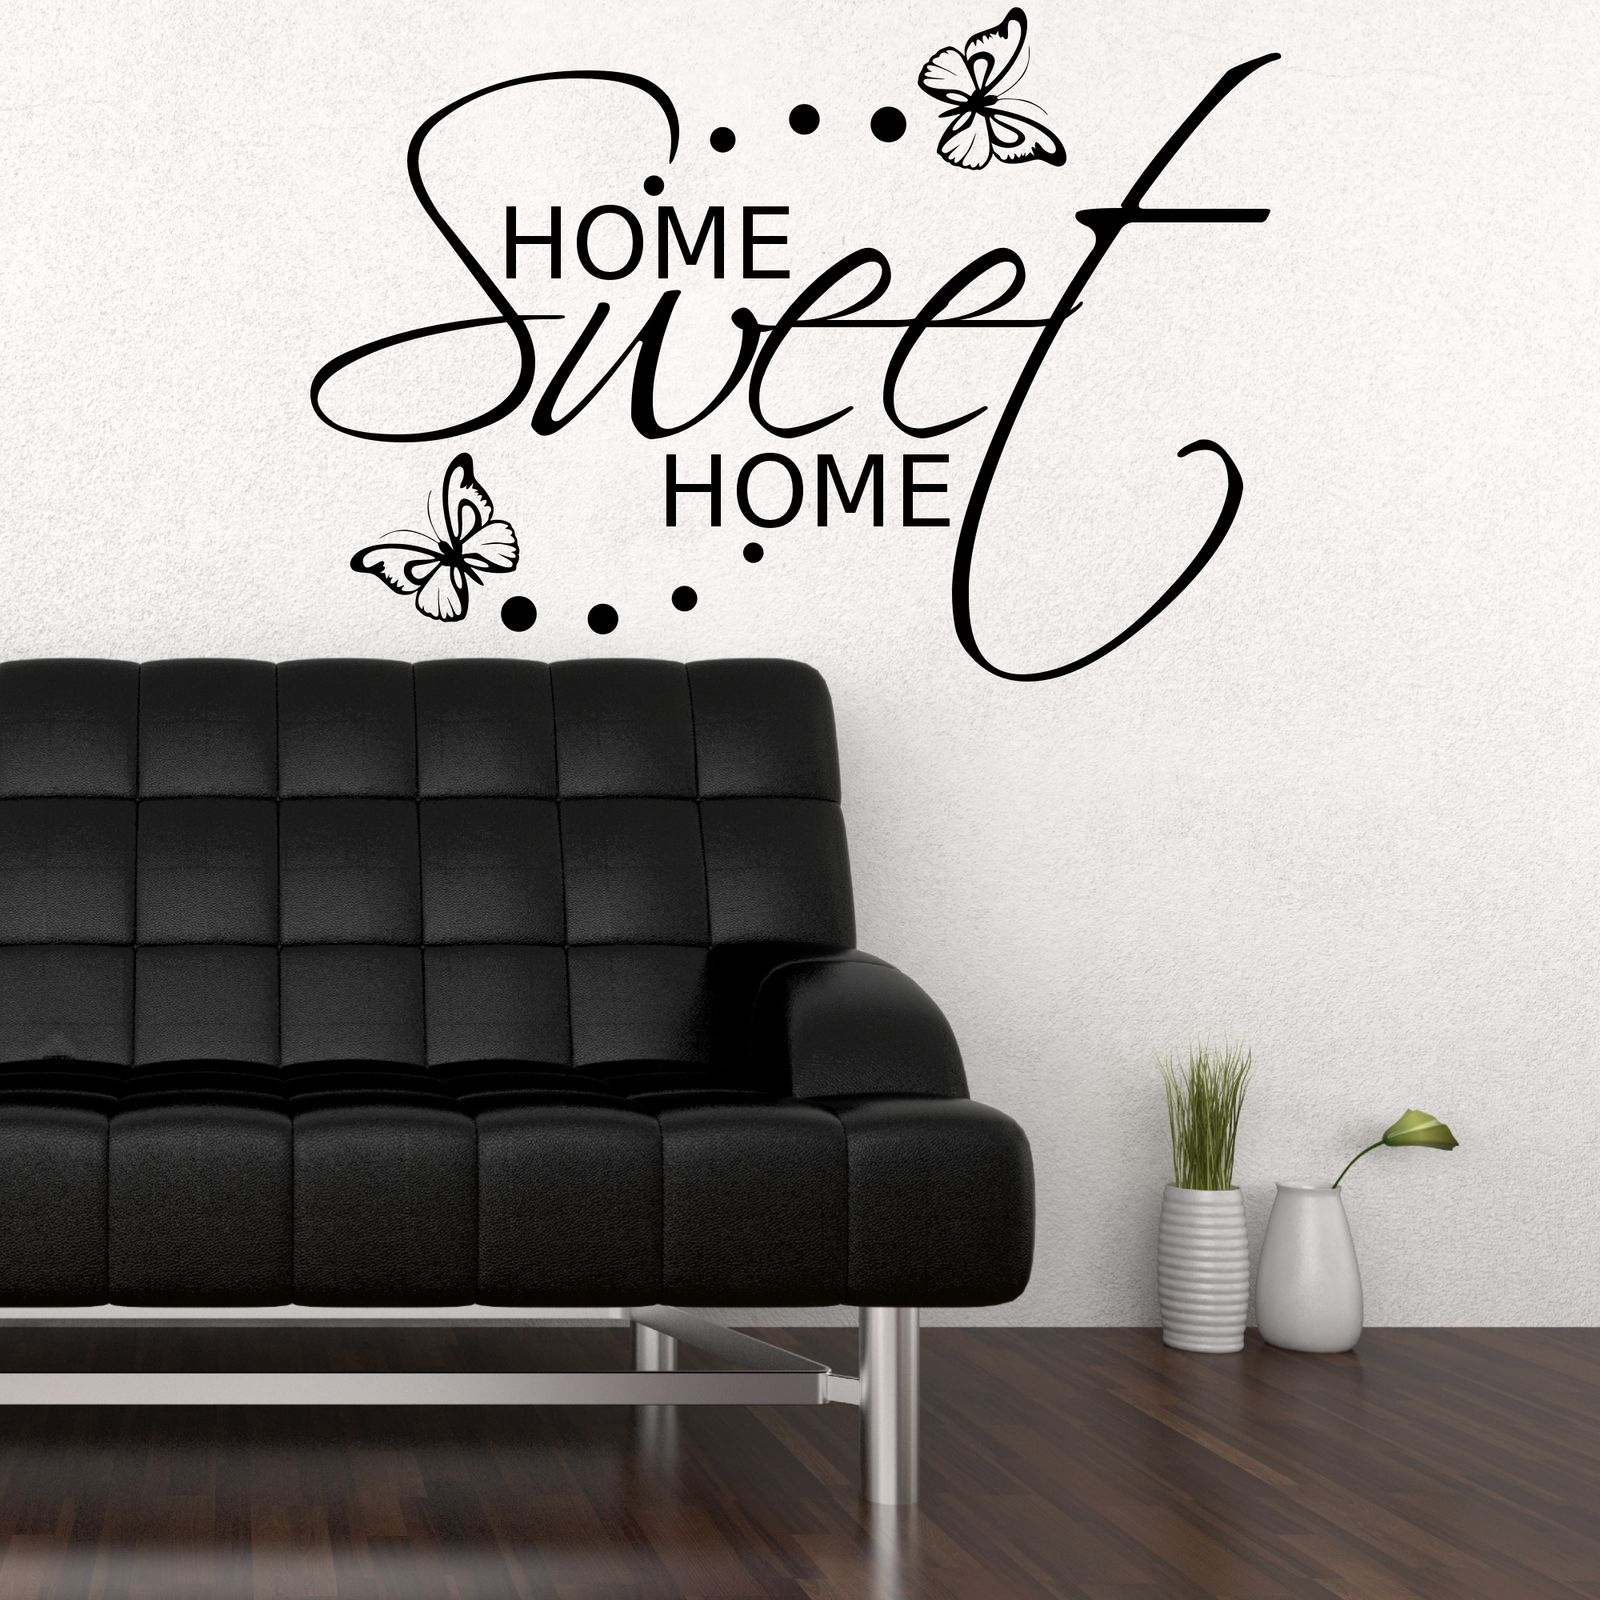 Home sweet home wall sticker art room gift decal mural for Sticker deco